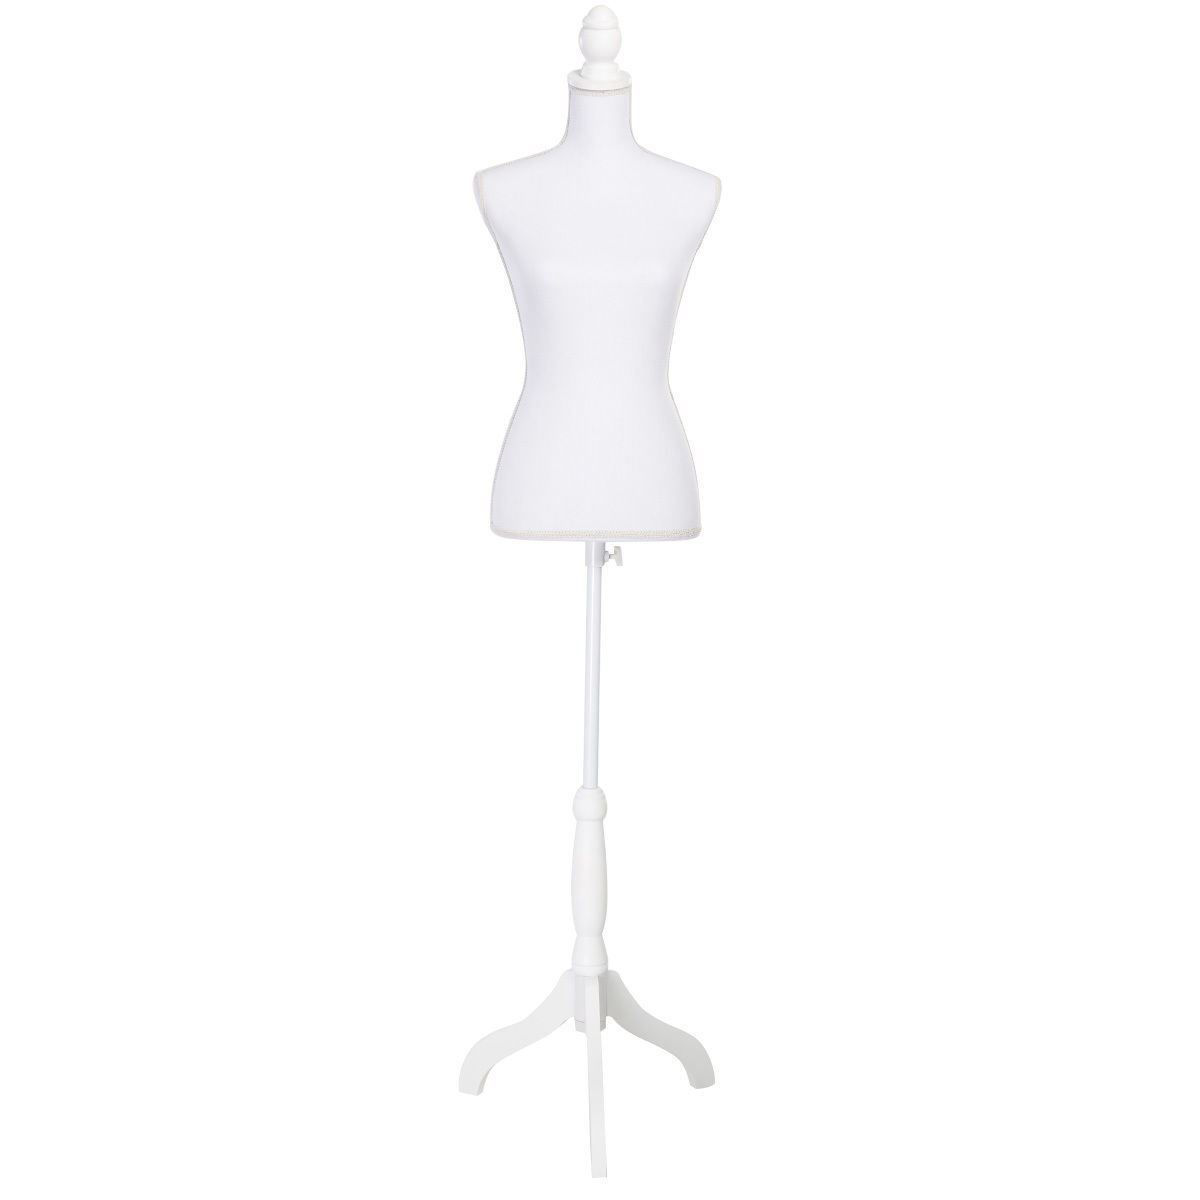 Picture of Female Mannequin Torso Dress Form Display With White Tripod Stand White